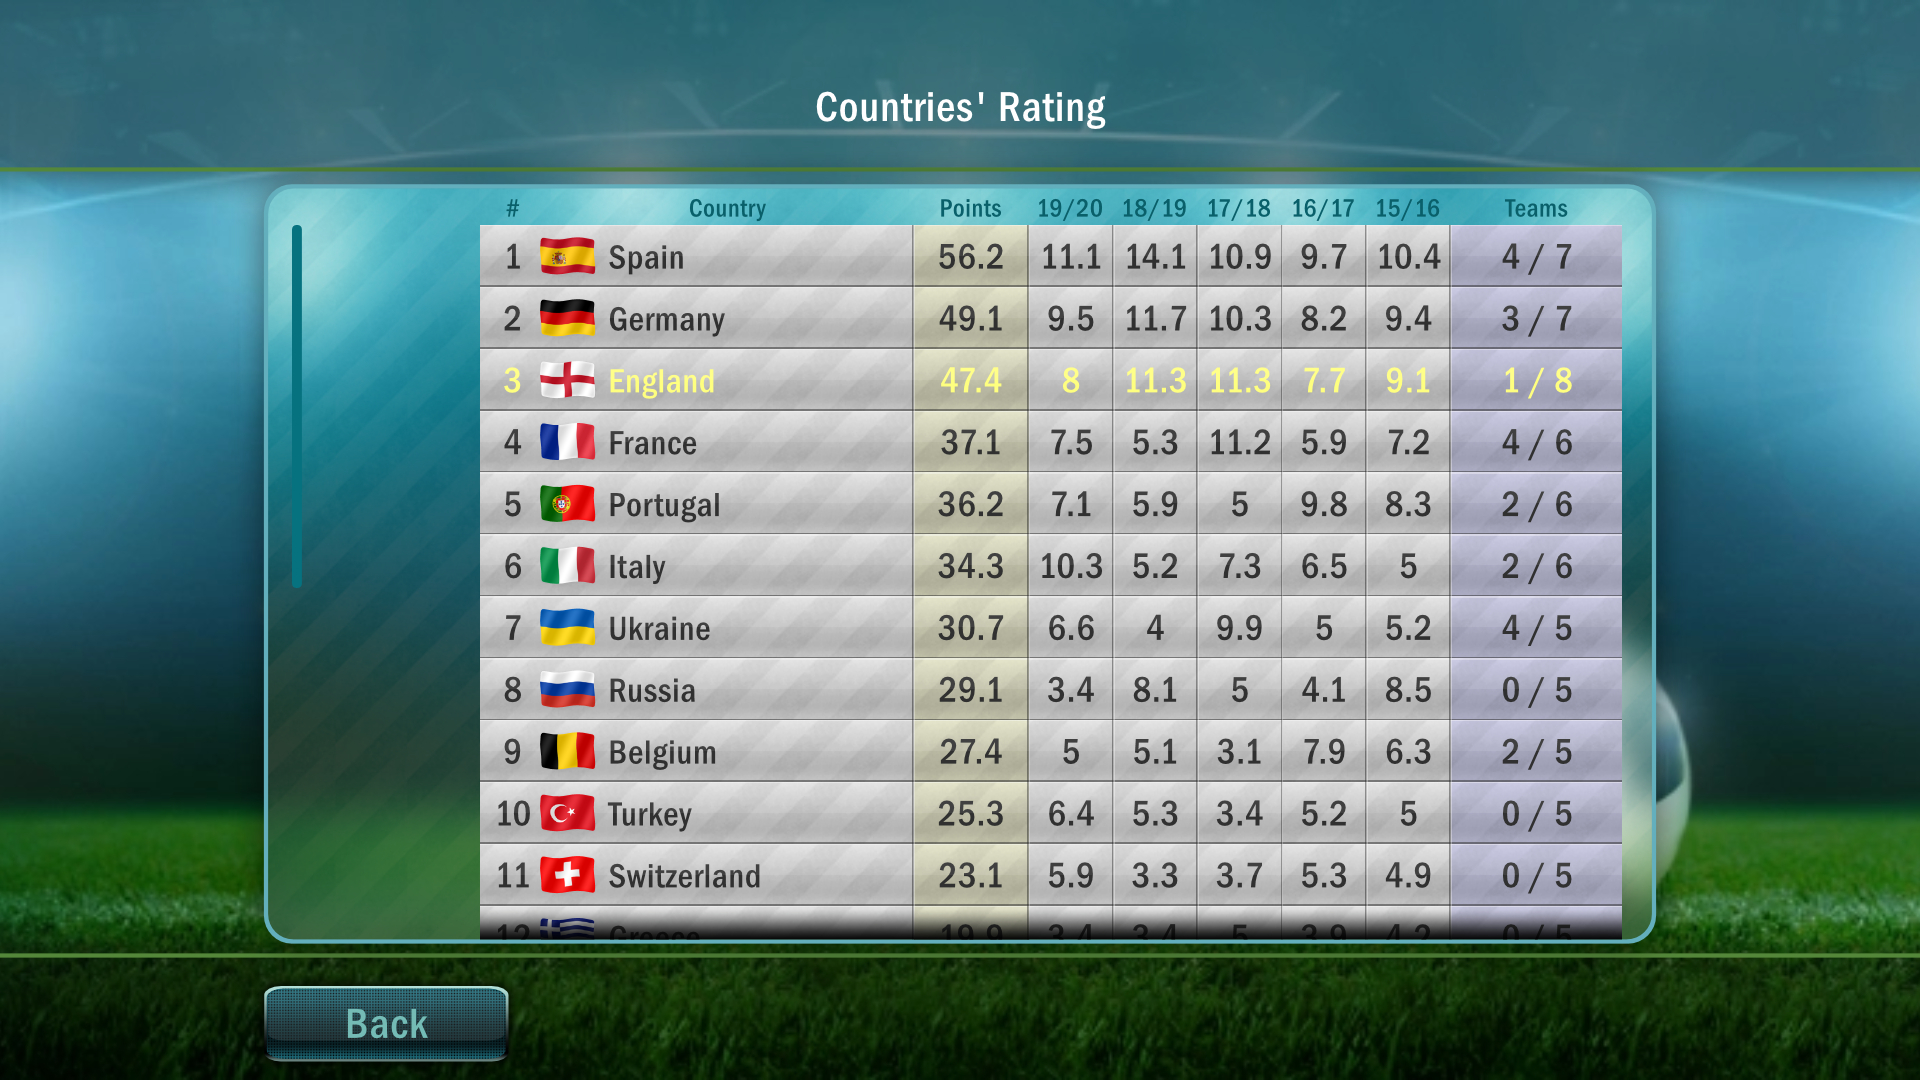 The higher your country's rating, the more teams will be able to play in the continental tournaments